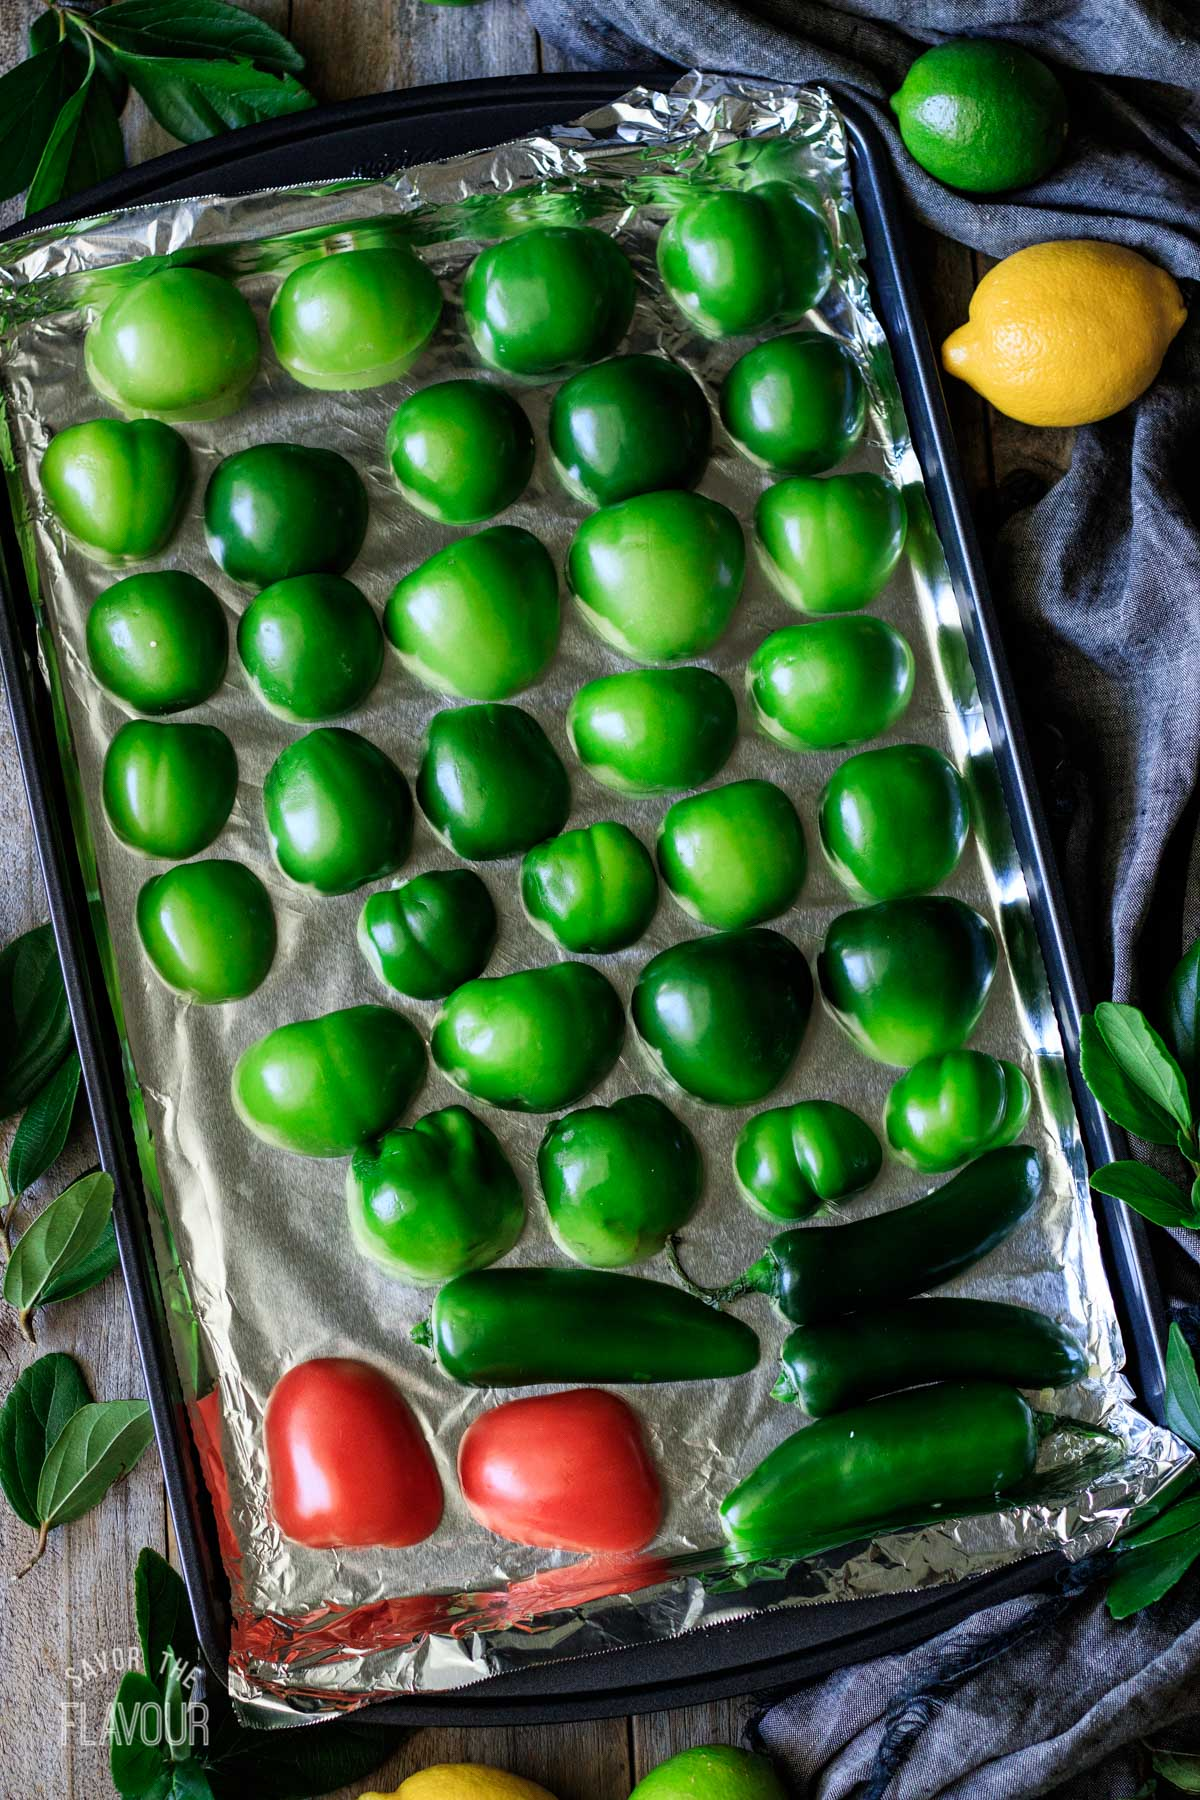 halved raw tomatillos, tomato, and jalapenos on a baking tray